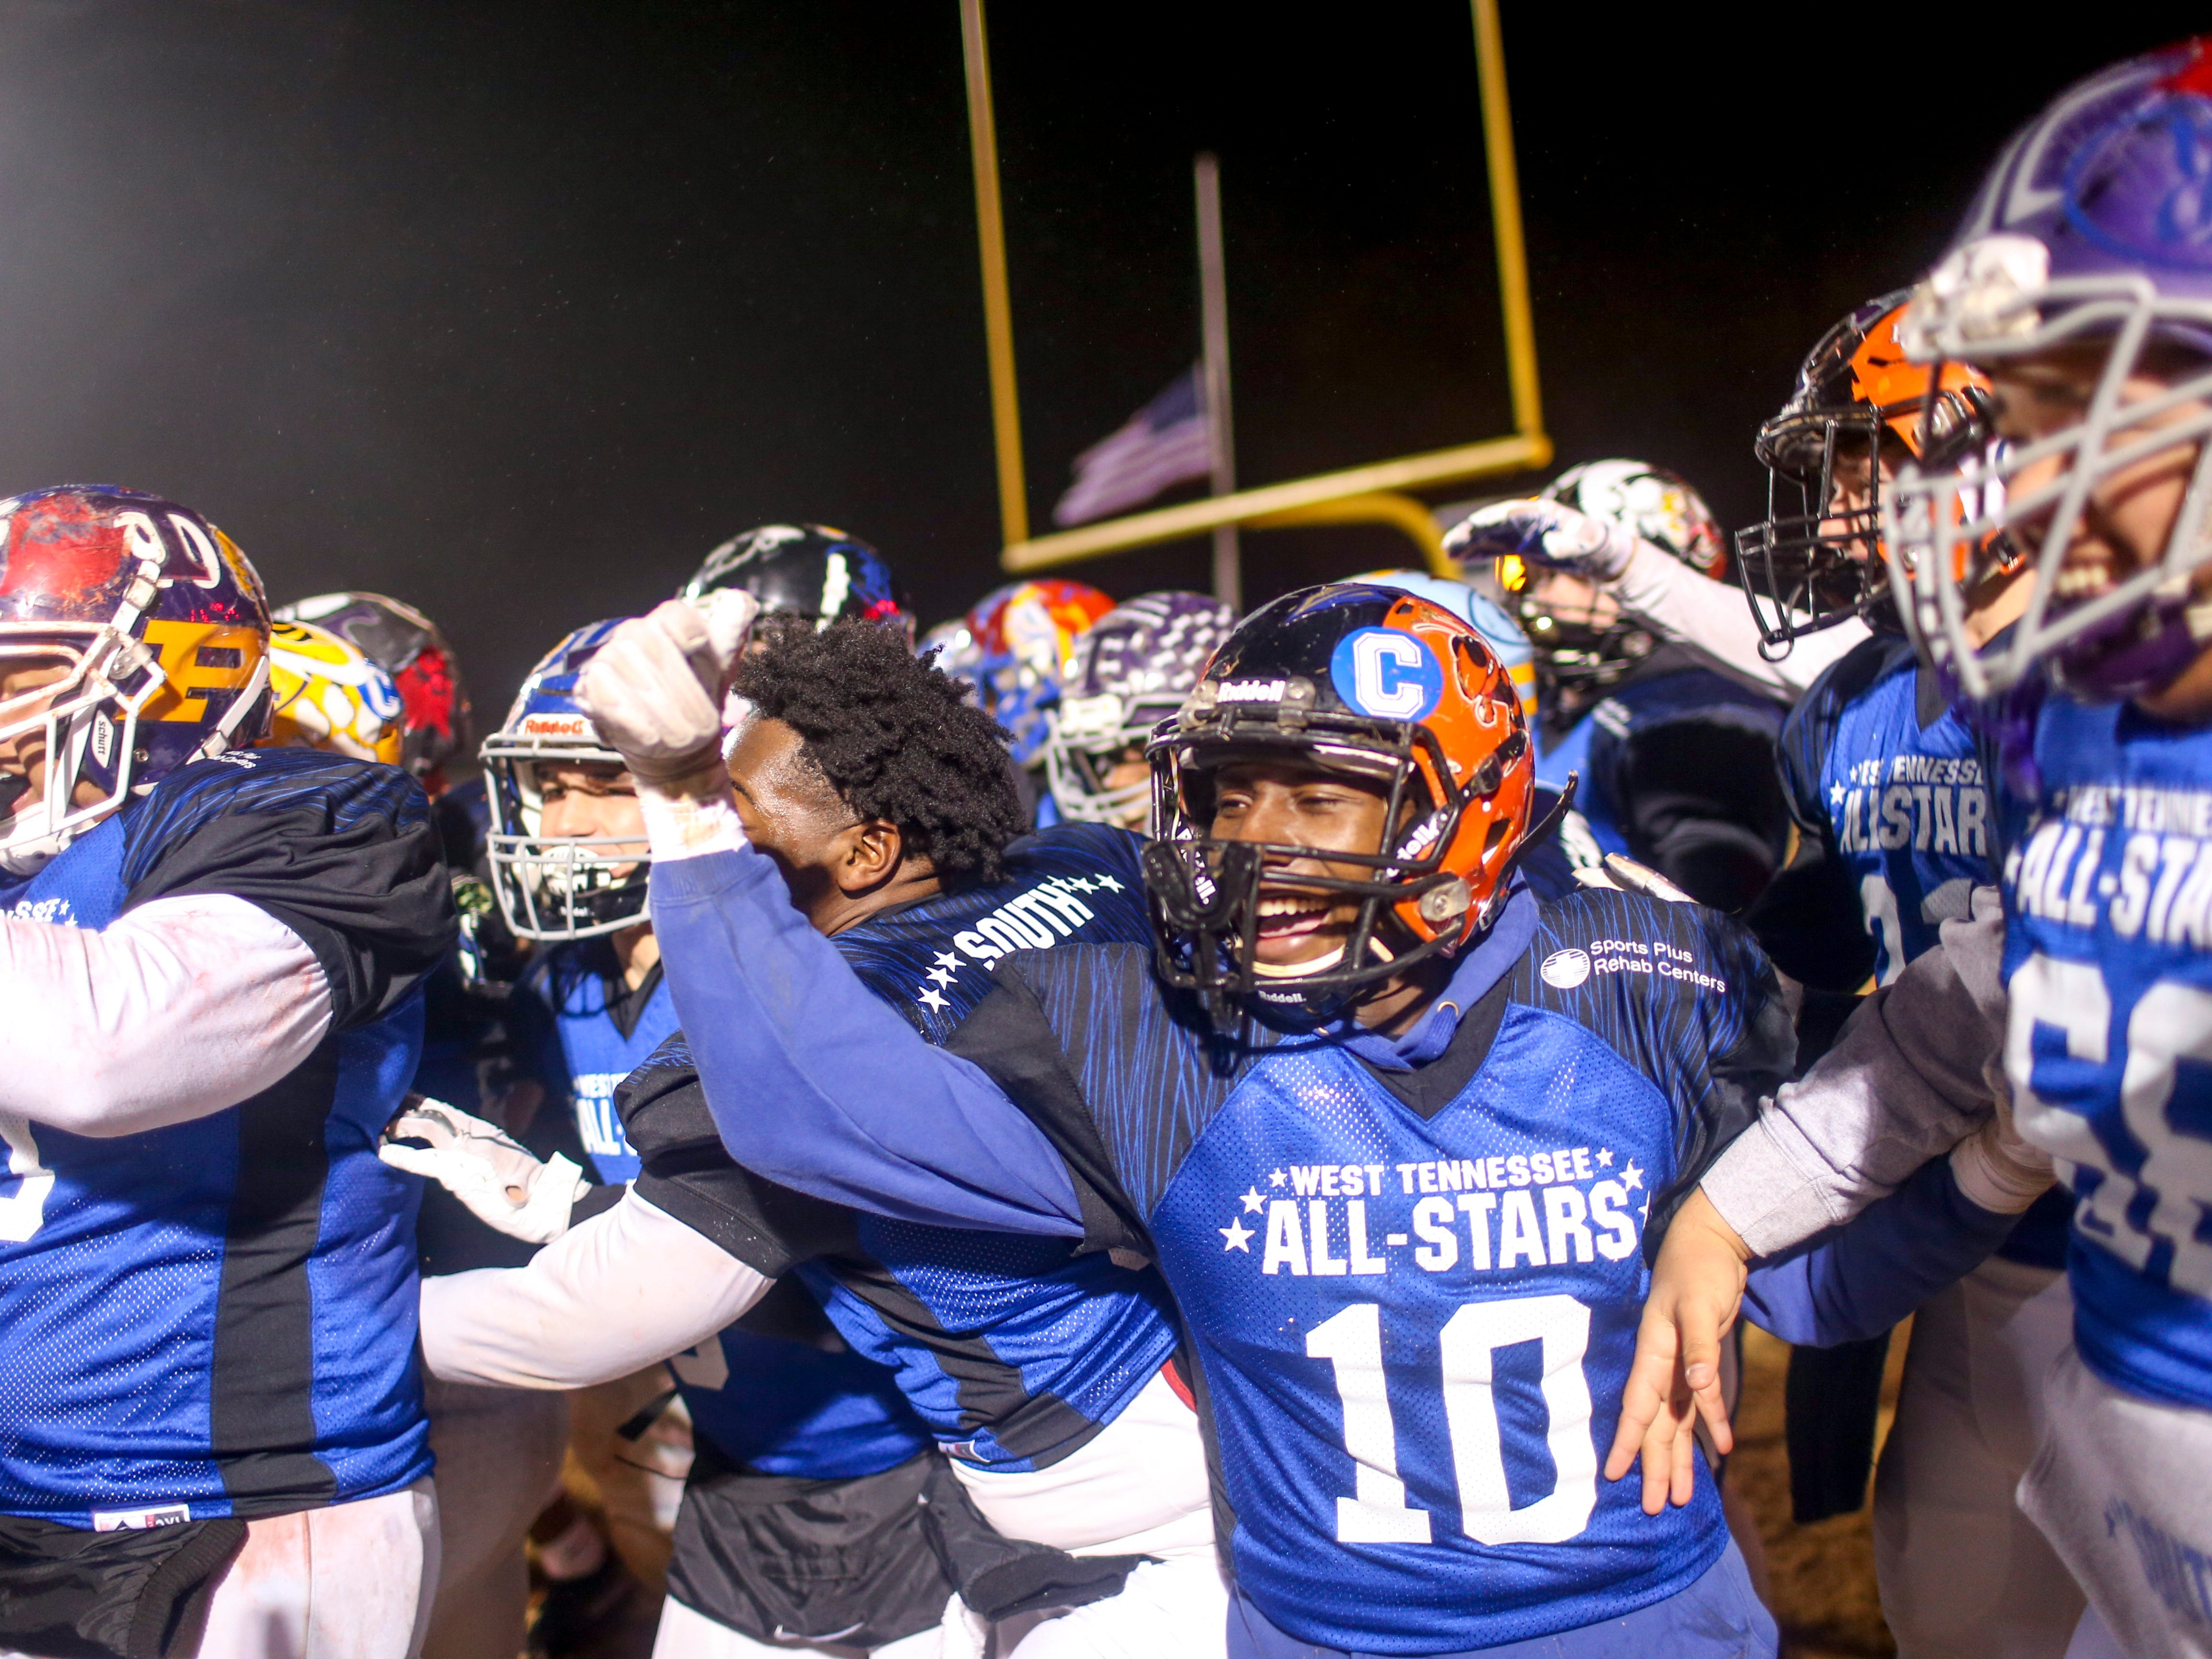 South team players celebrate after Chester Co's Peyton Doles (27) ran a touchdown after intercepting a pass during the West Tennessee All-Star football game at University School of Jackson in Jackson, Tenn., on Friday, Dec. 7, 2018.